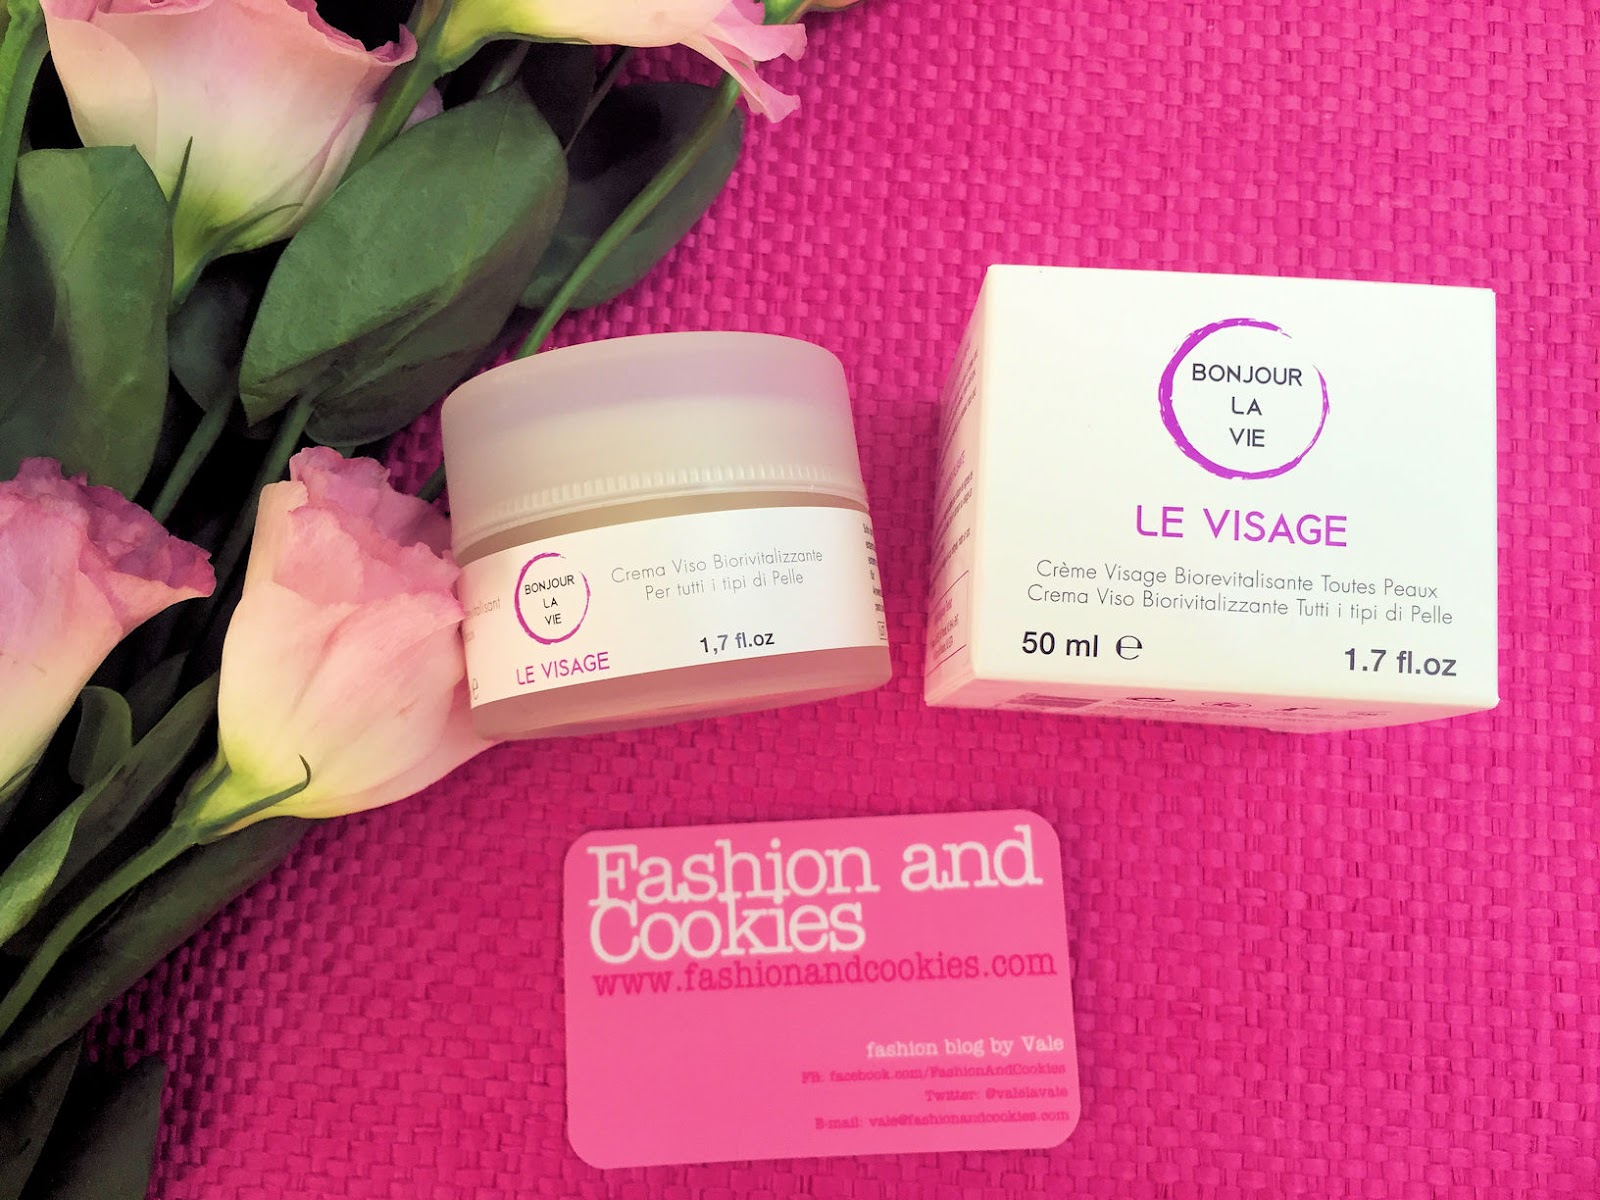 Bonjour La Vie Skincare natural products crema viso biorivitalizzante su Fashion and Cookies beauty blog, beauty blogger